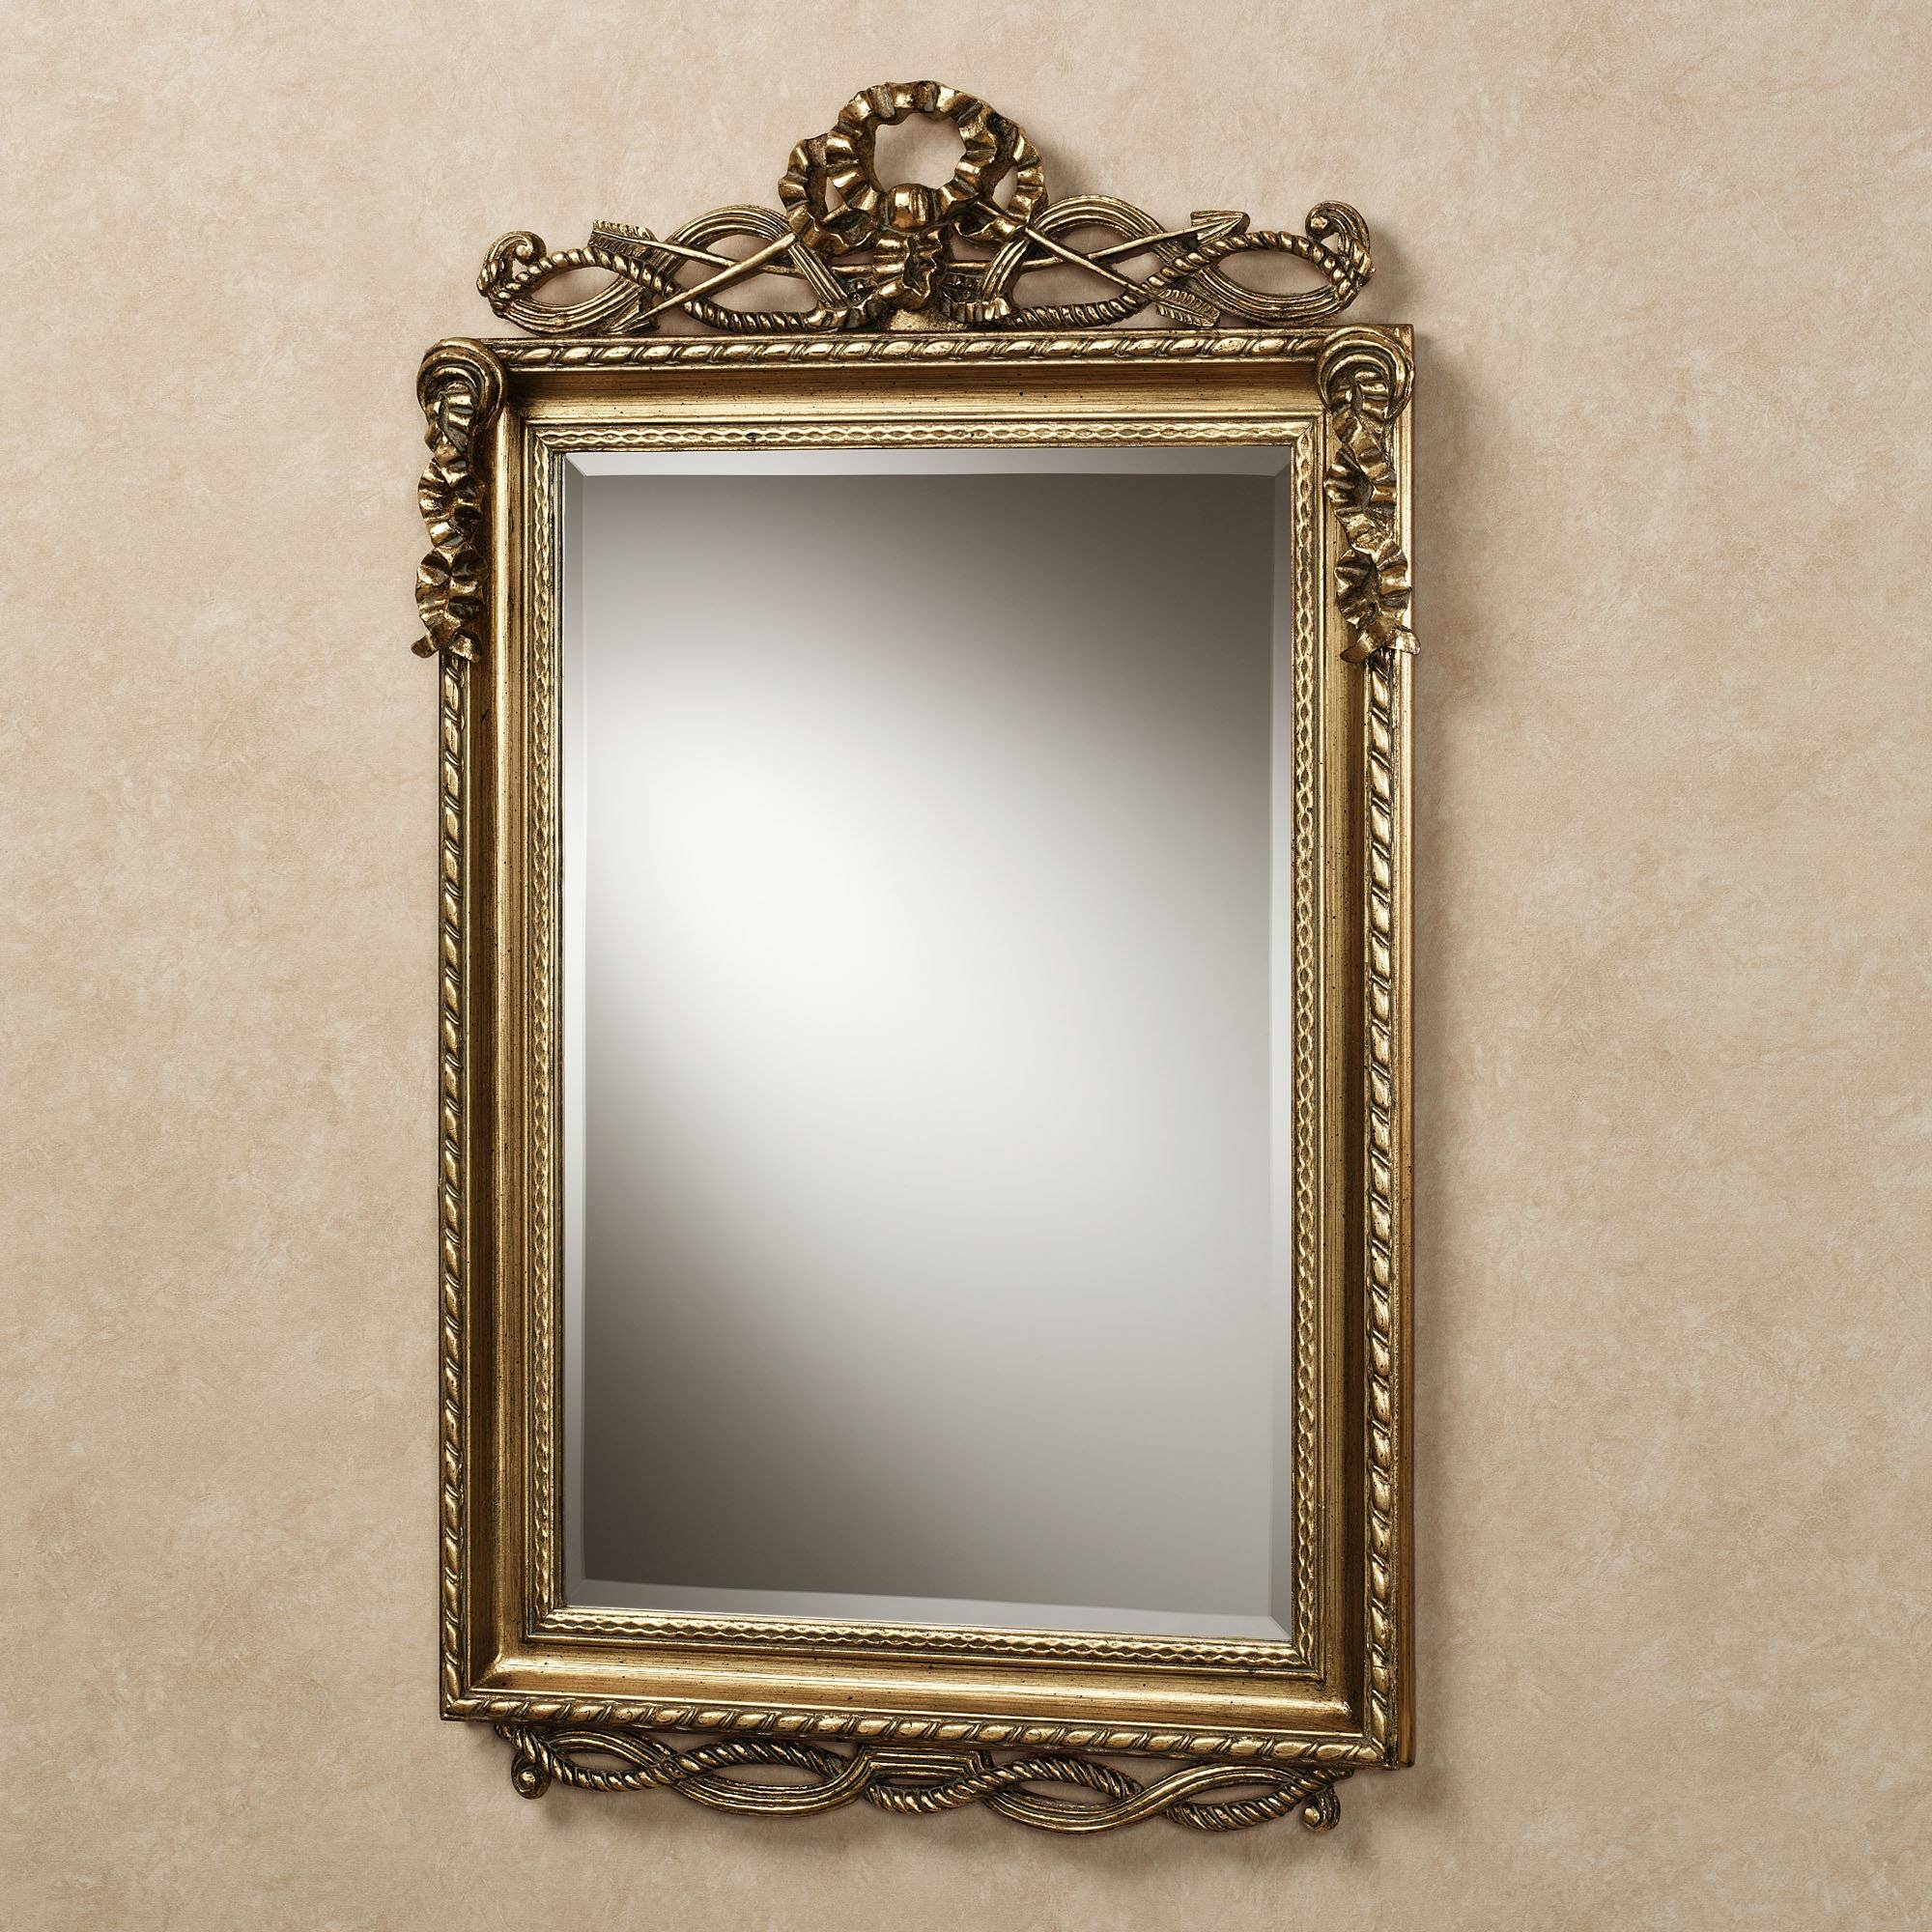 Vintage Wall Mirrors Style : Doherty House - A Beautiful Of inside Old-Style Mirrors (Image 13 of 15)